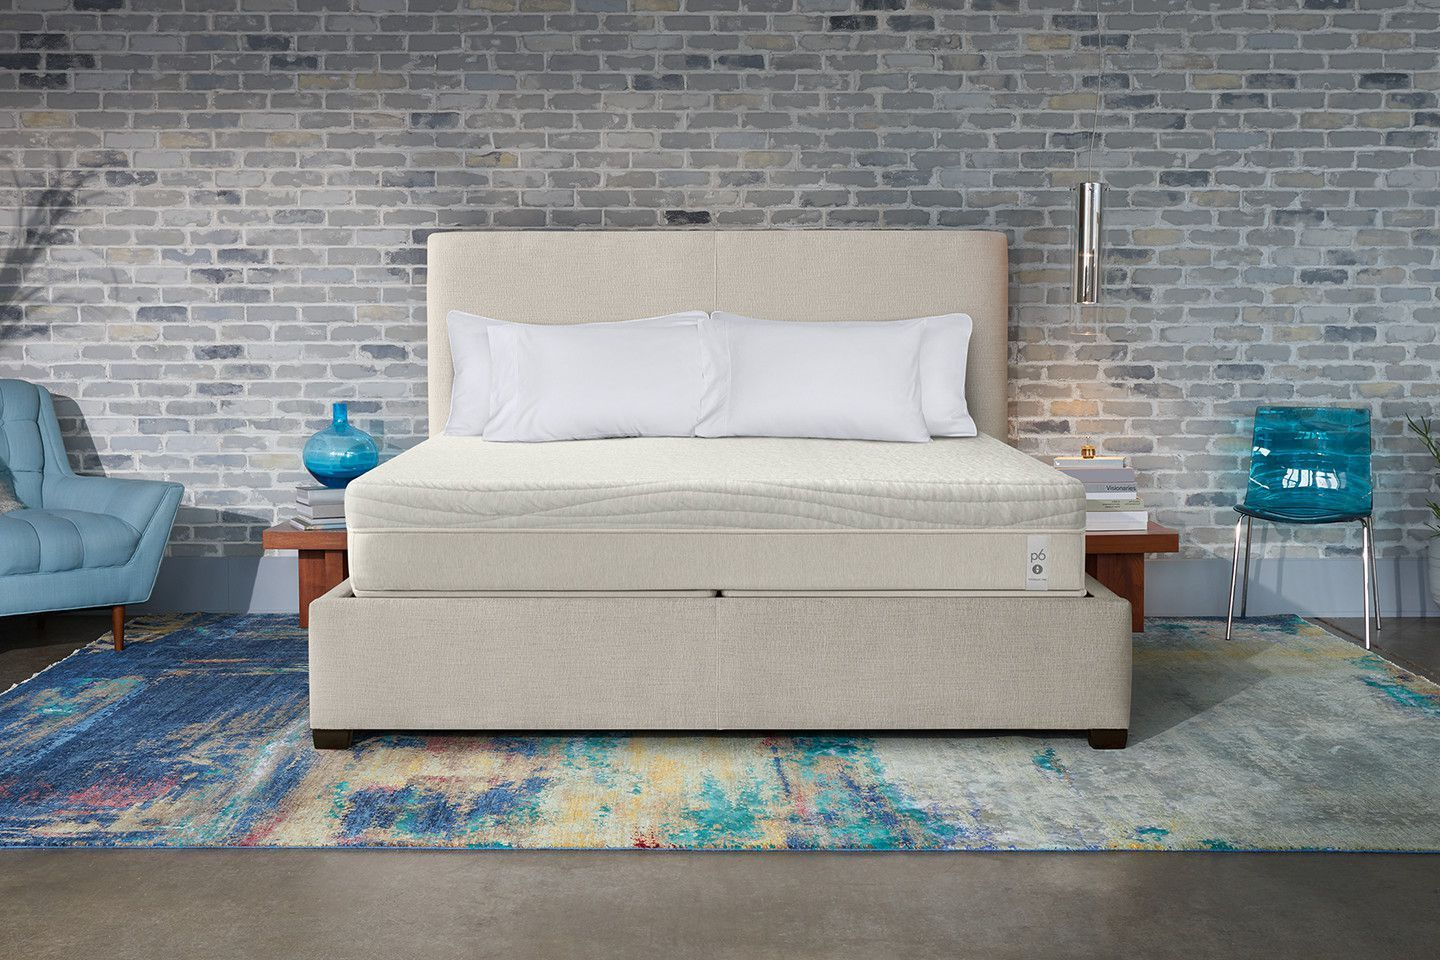 The Best Adjustable Beds and Mattresses for Your Best